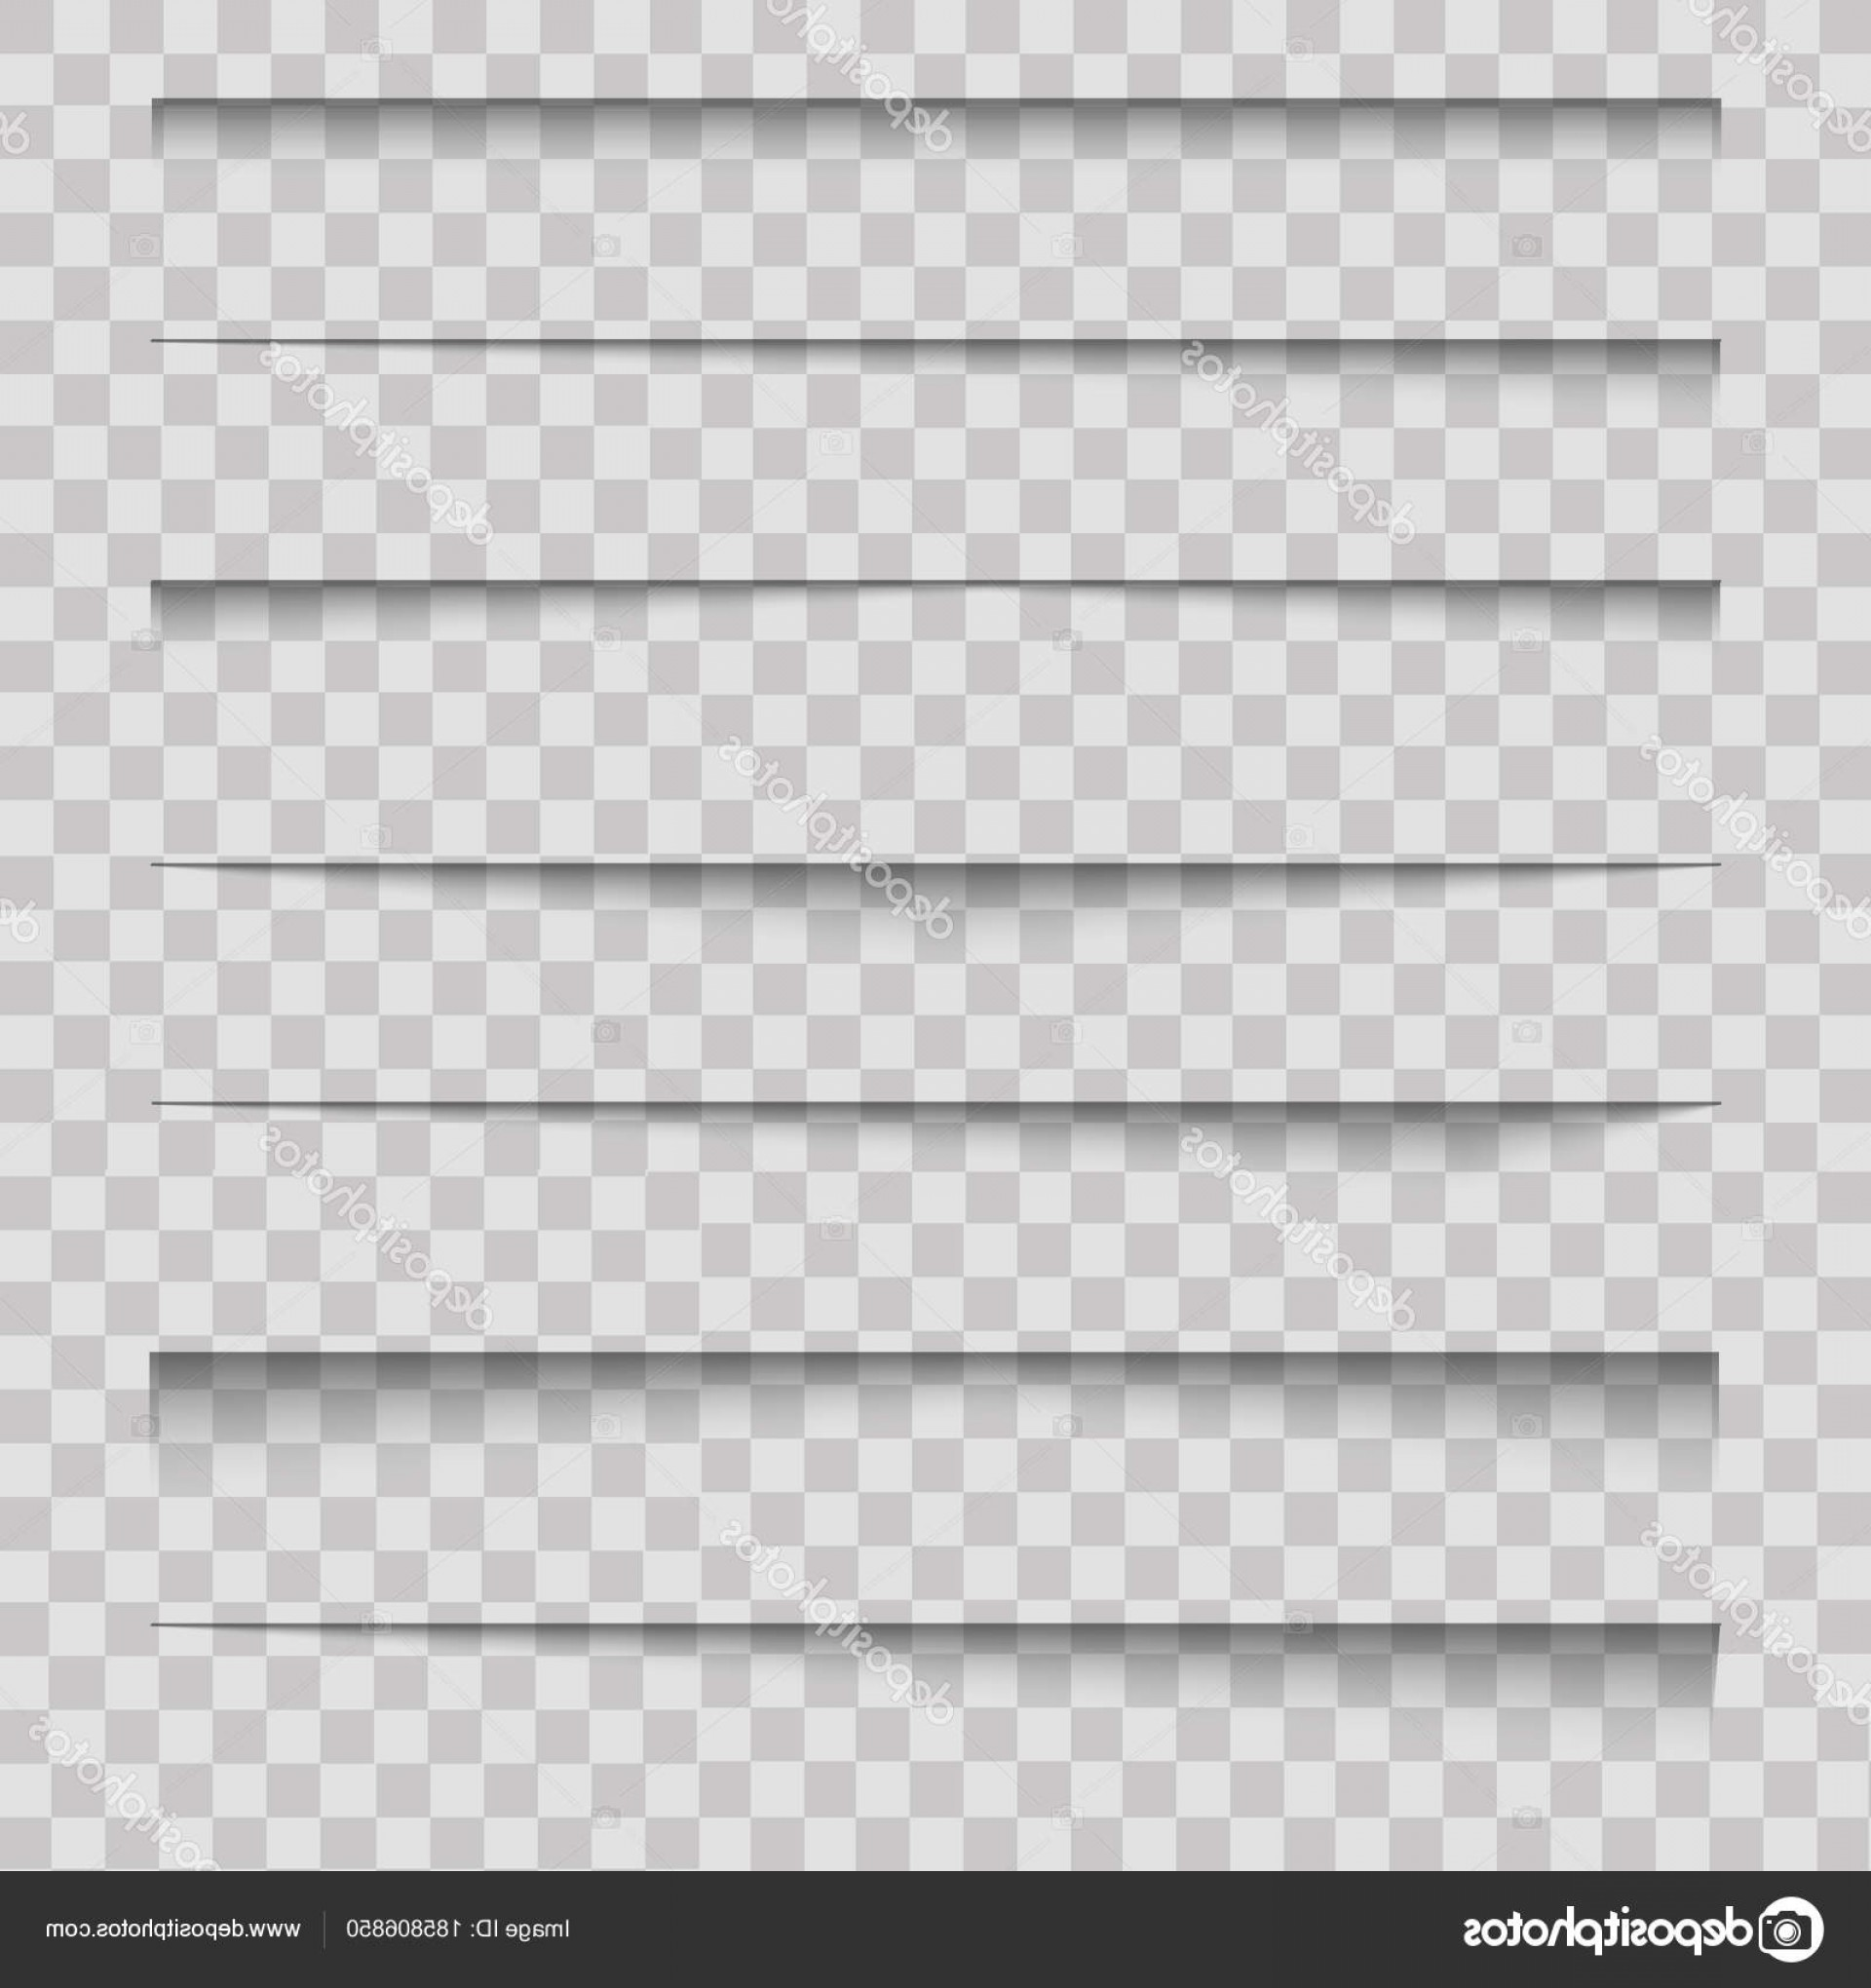 Vector Line Dividers Transparent Backgrounds: Stock Illustration Realistic Paper Divider Shadow Effects